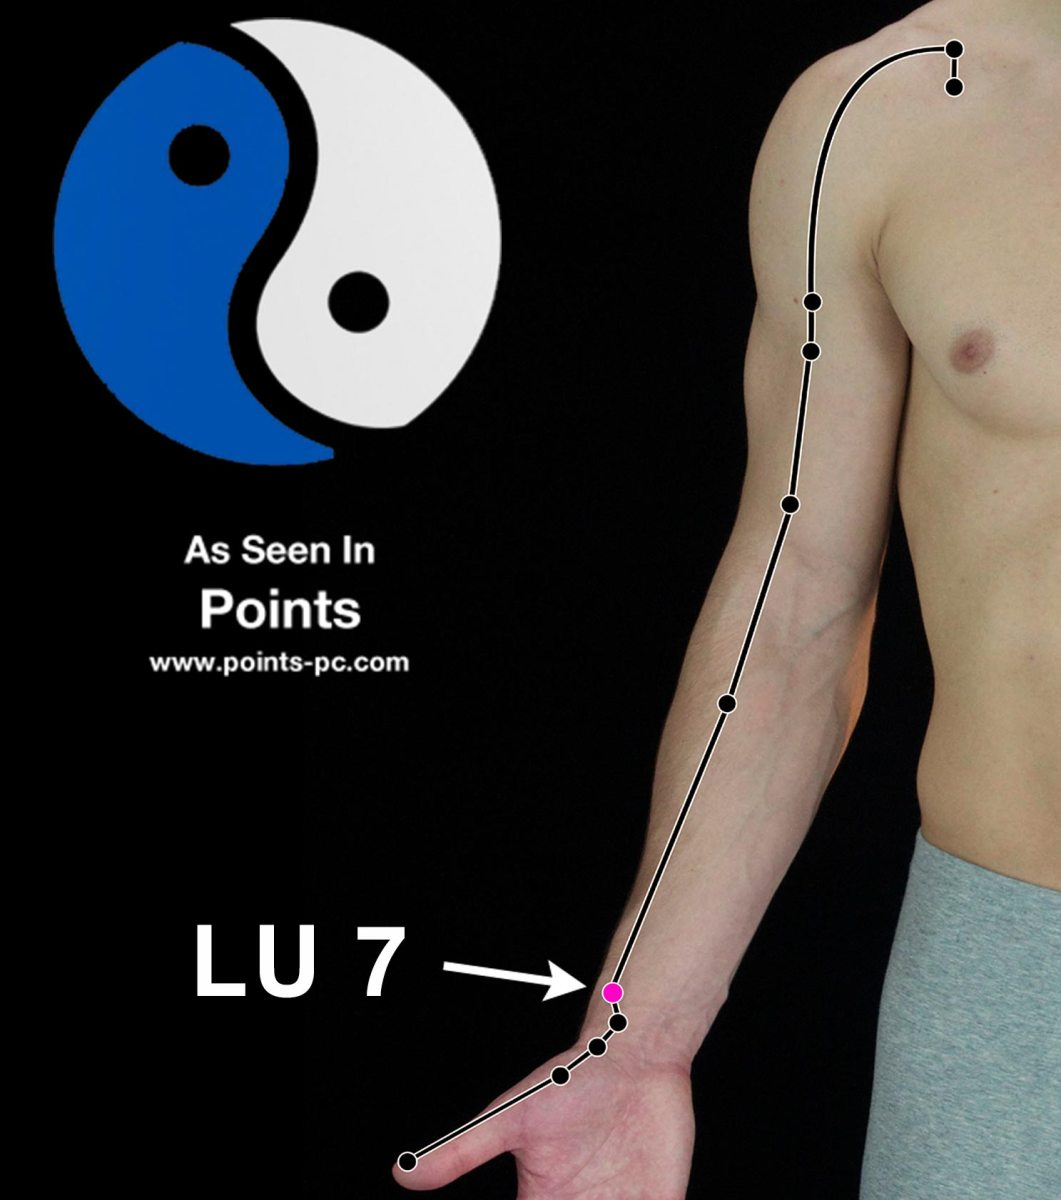 Acupuncture Point: Lung 7